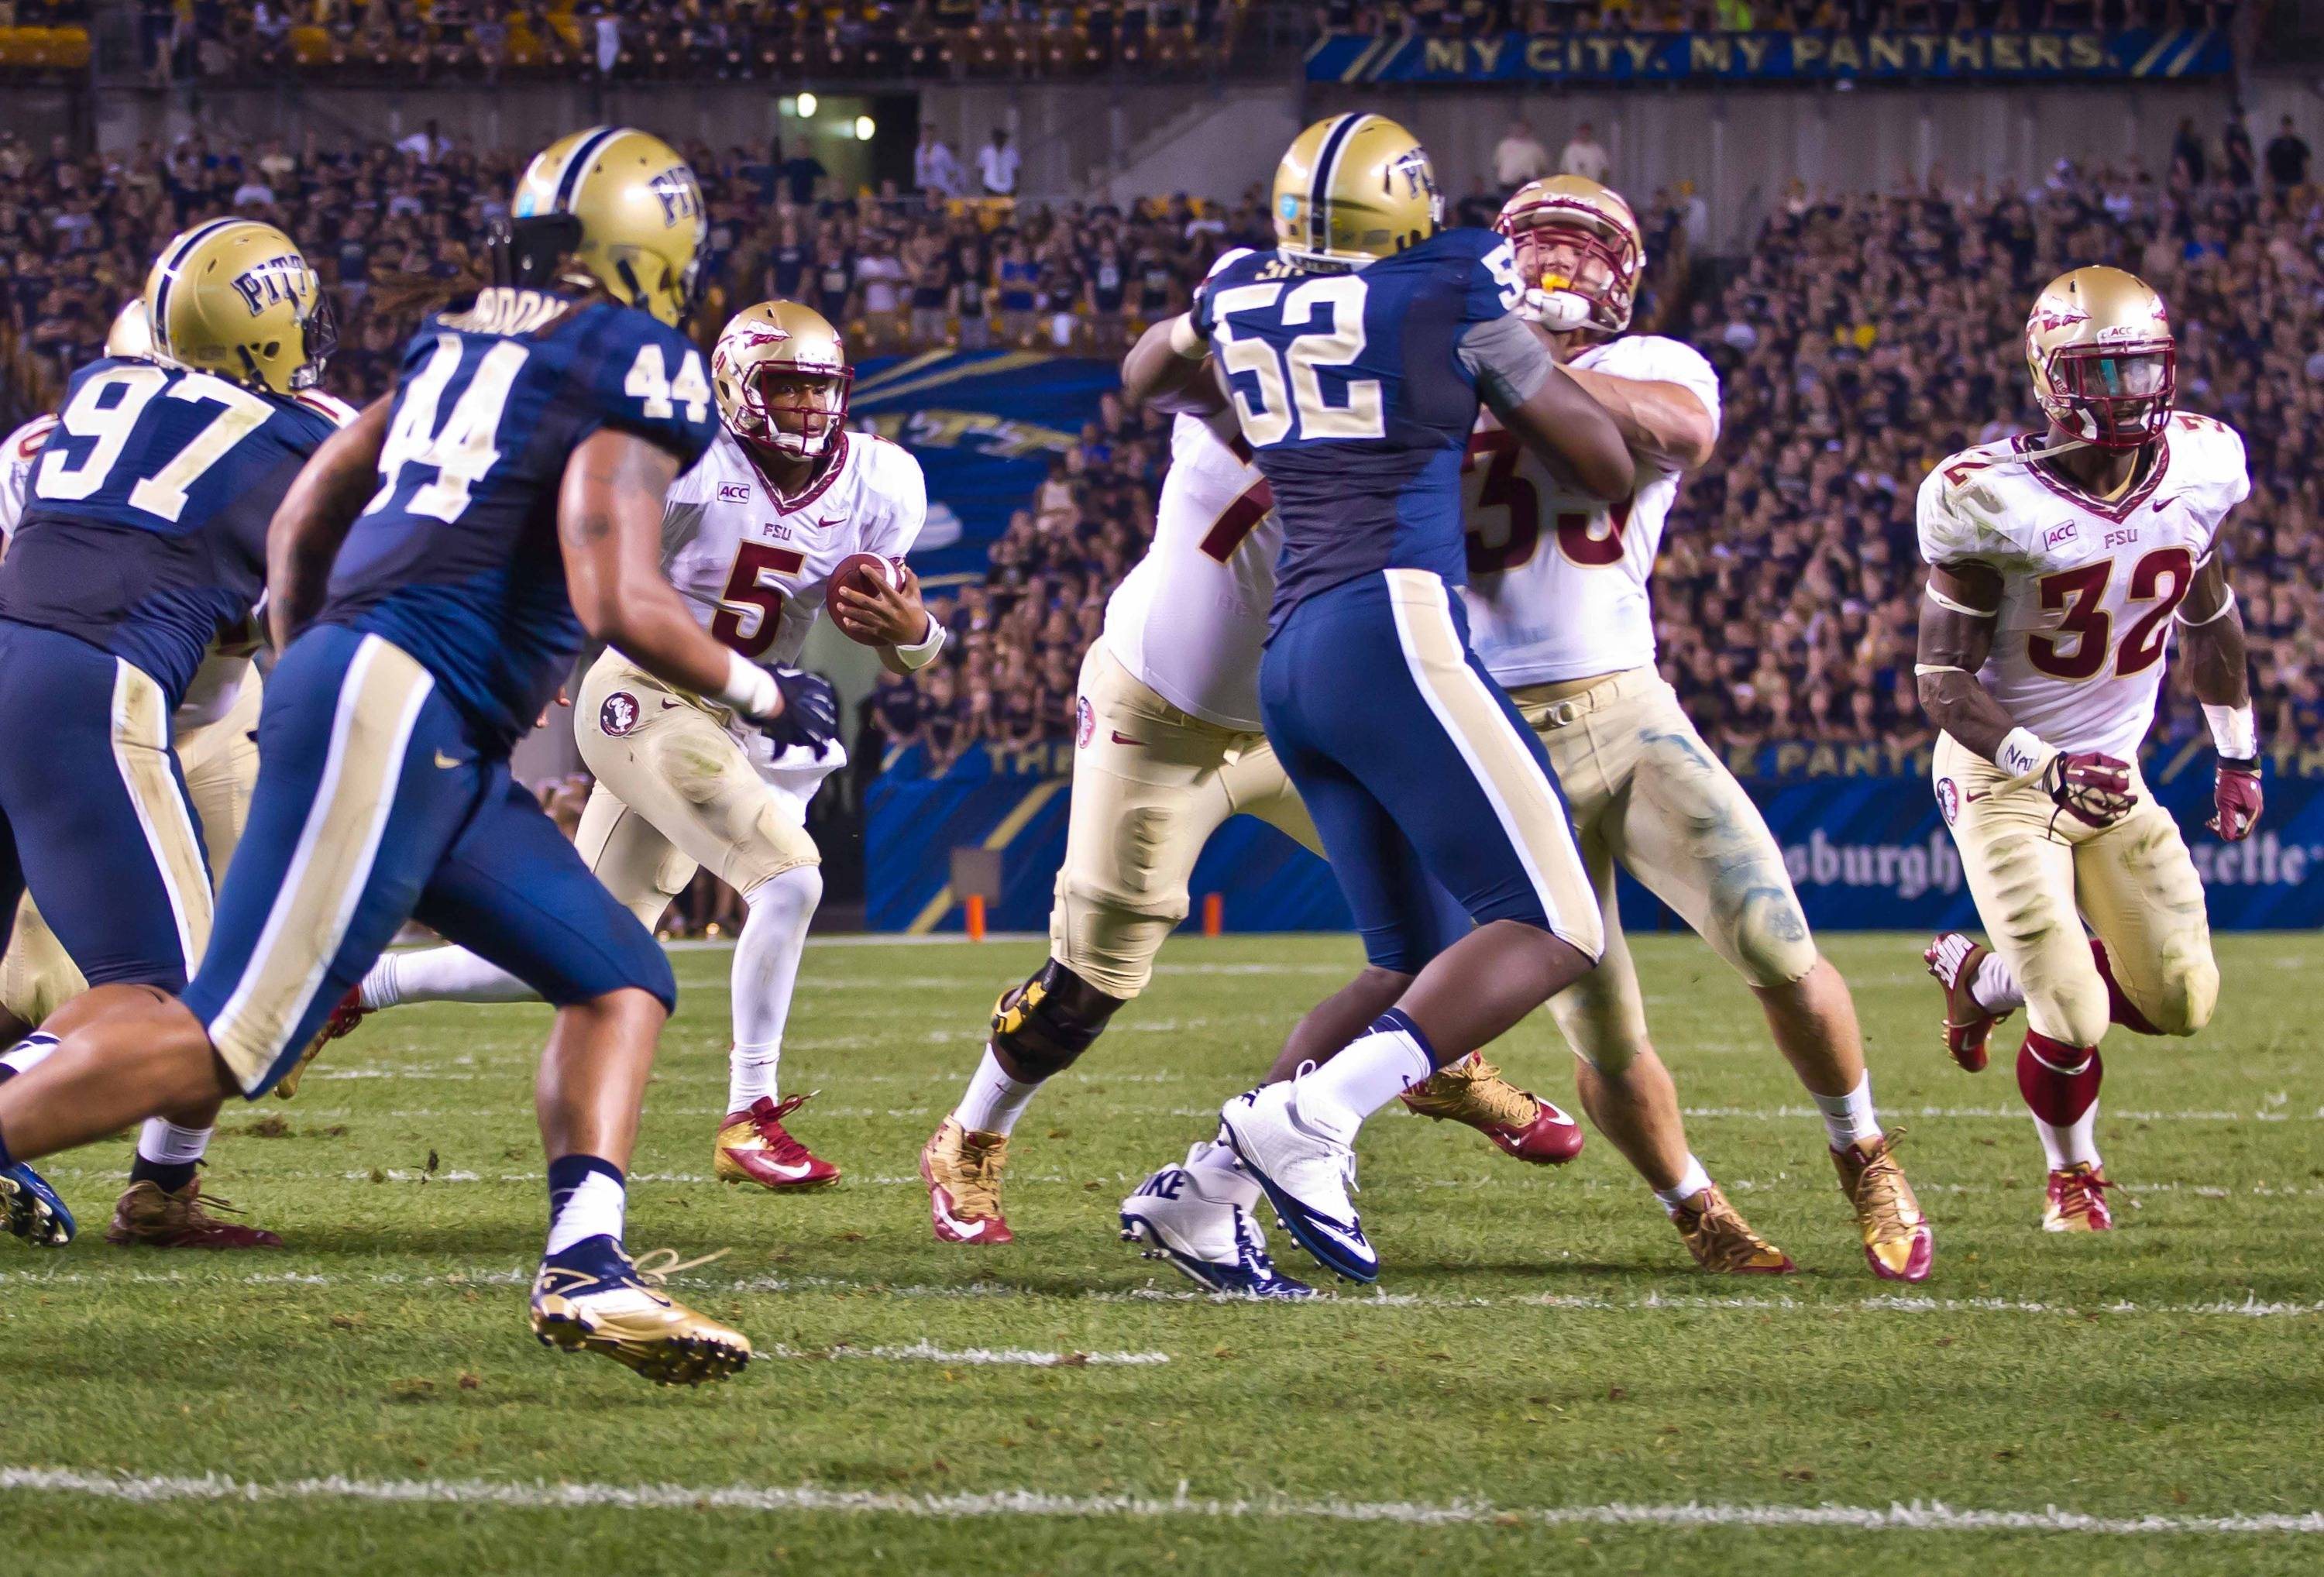 Jameis Winston (5) follows his blockers to score an FSU TD.